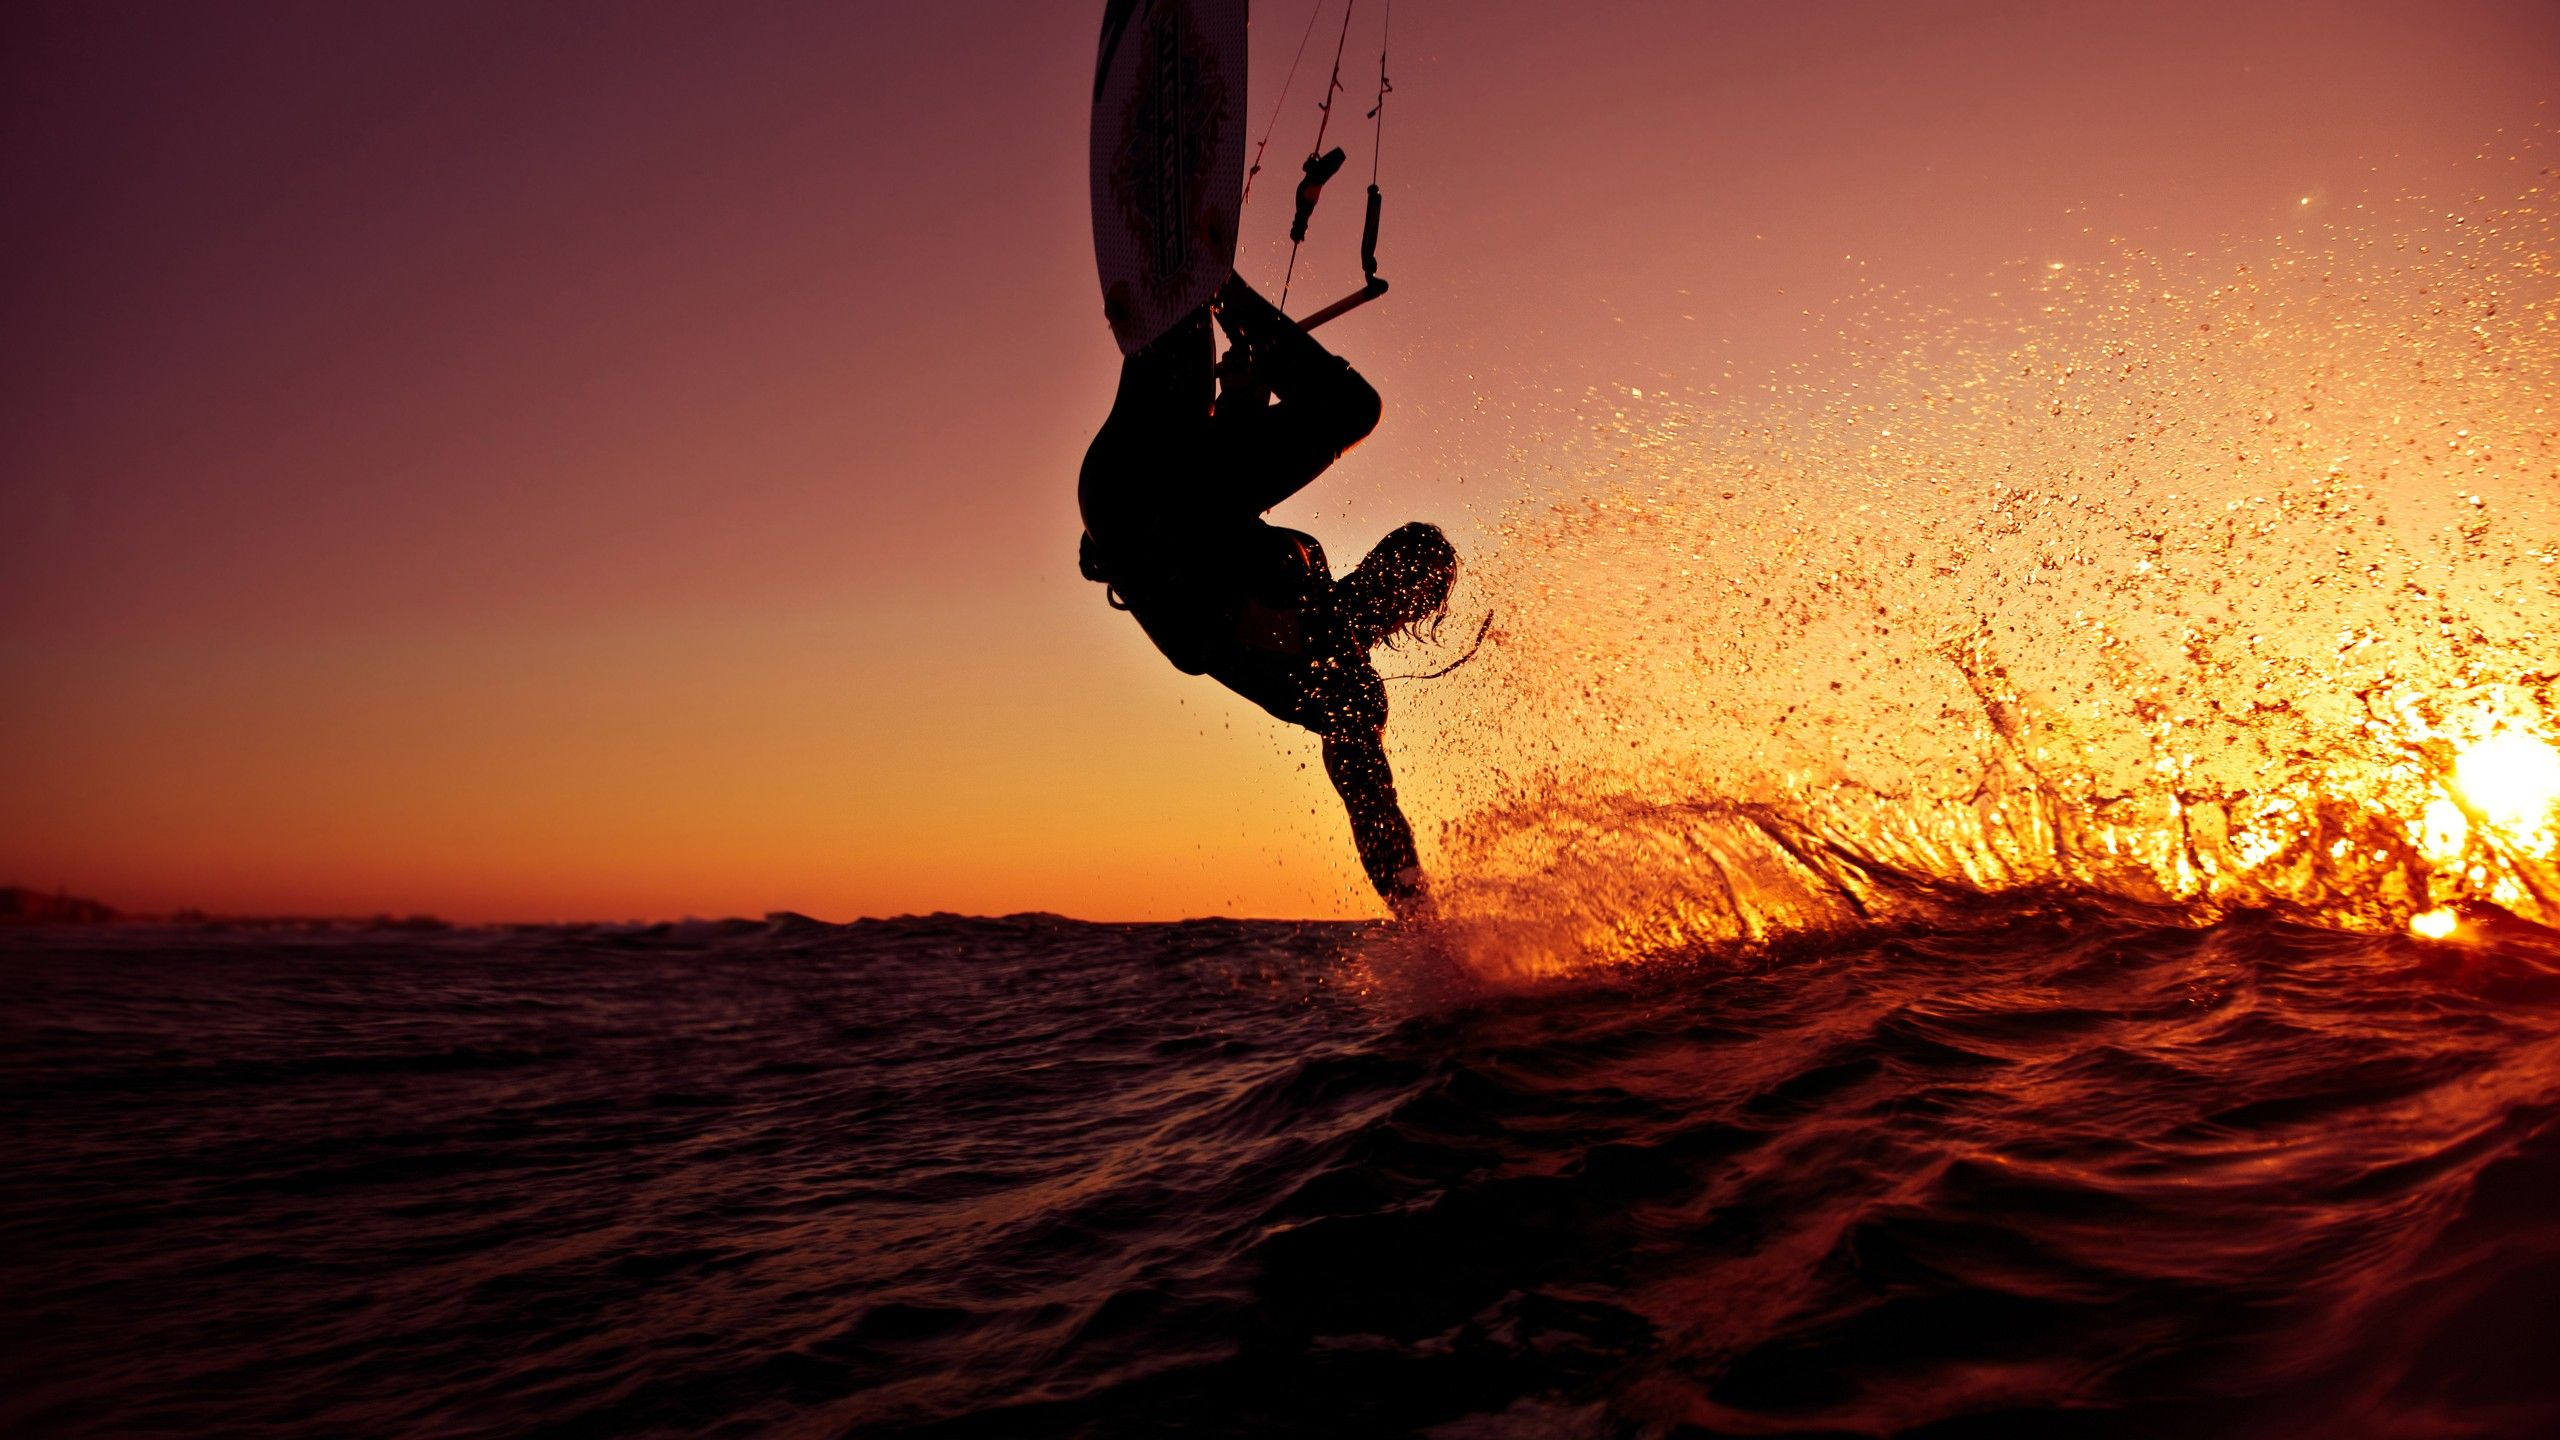 Windsurfing sea Wallpapers Pictures